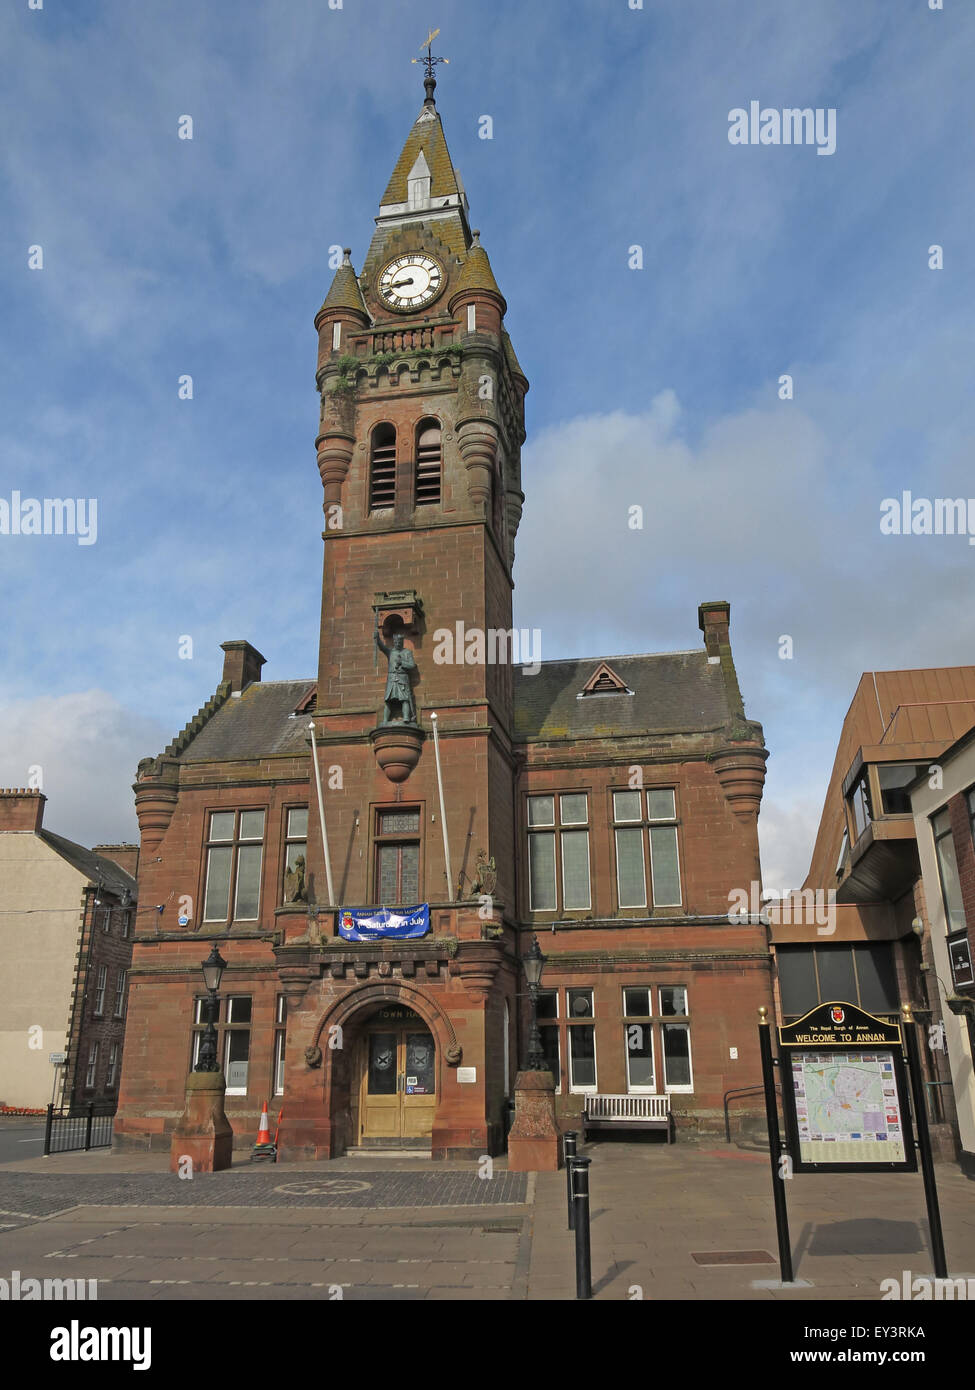 Annan town hall,Annan,Dumfries & Galloway - Municipal buildings,Council,Offices,High,Street,Annan,DG12 6AQ,stone,historic,history,Victorian,royal,burgh,in,south-west,Scotland,sandstone,Dumfries and Galloway,GoTonySmith,Buy Pictures of,Buy Images Of